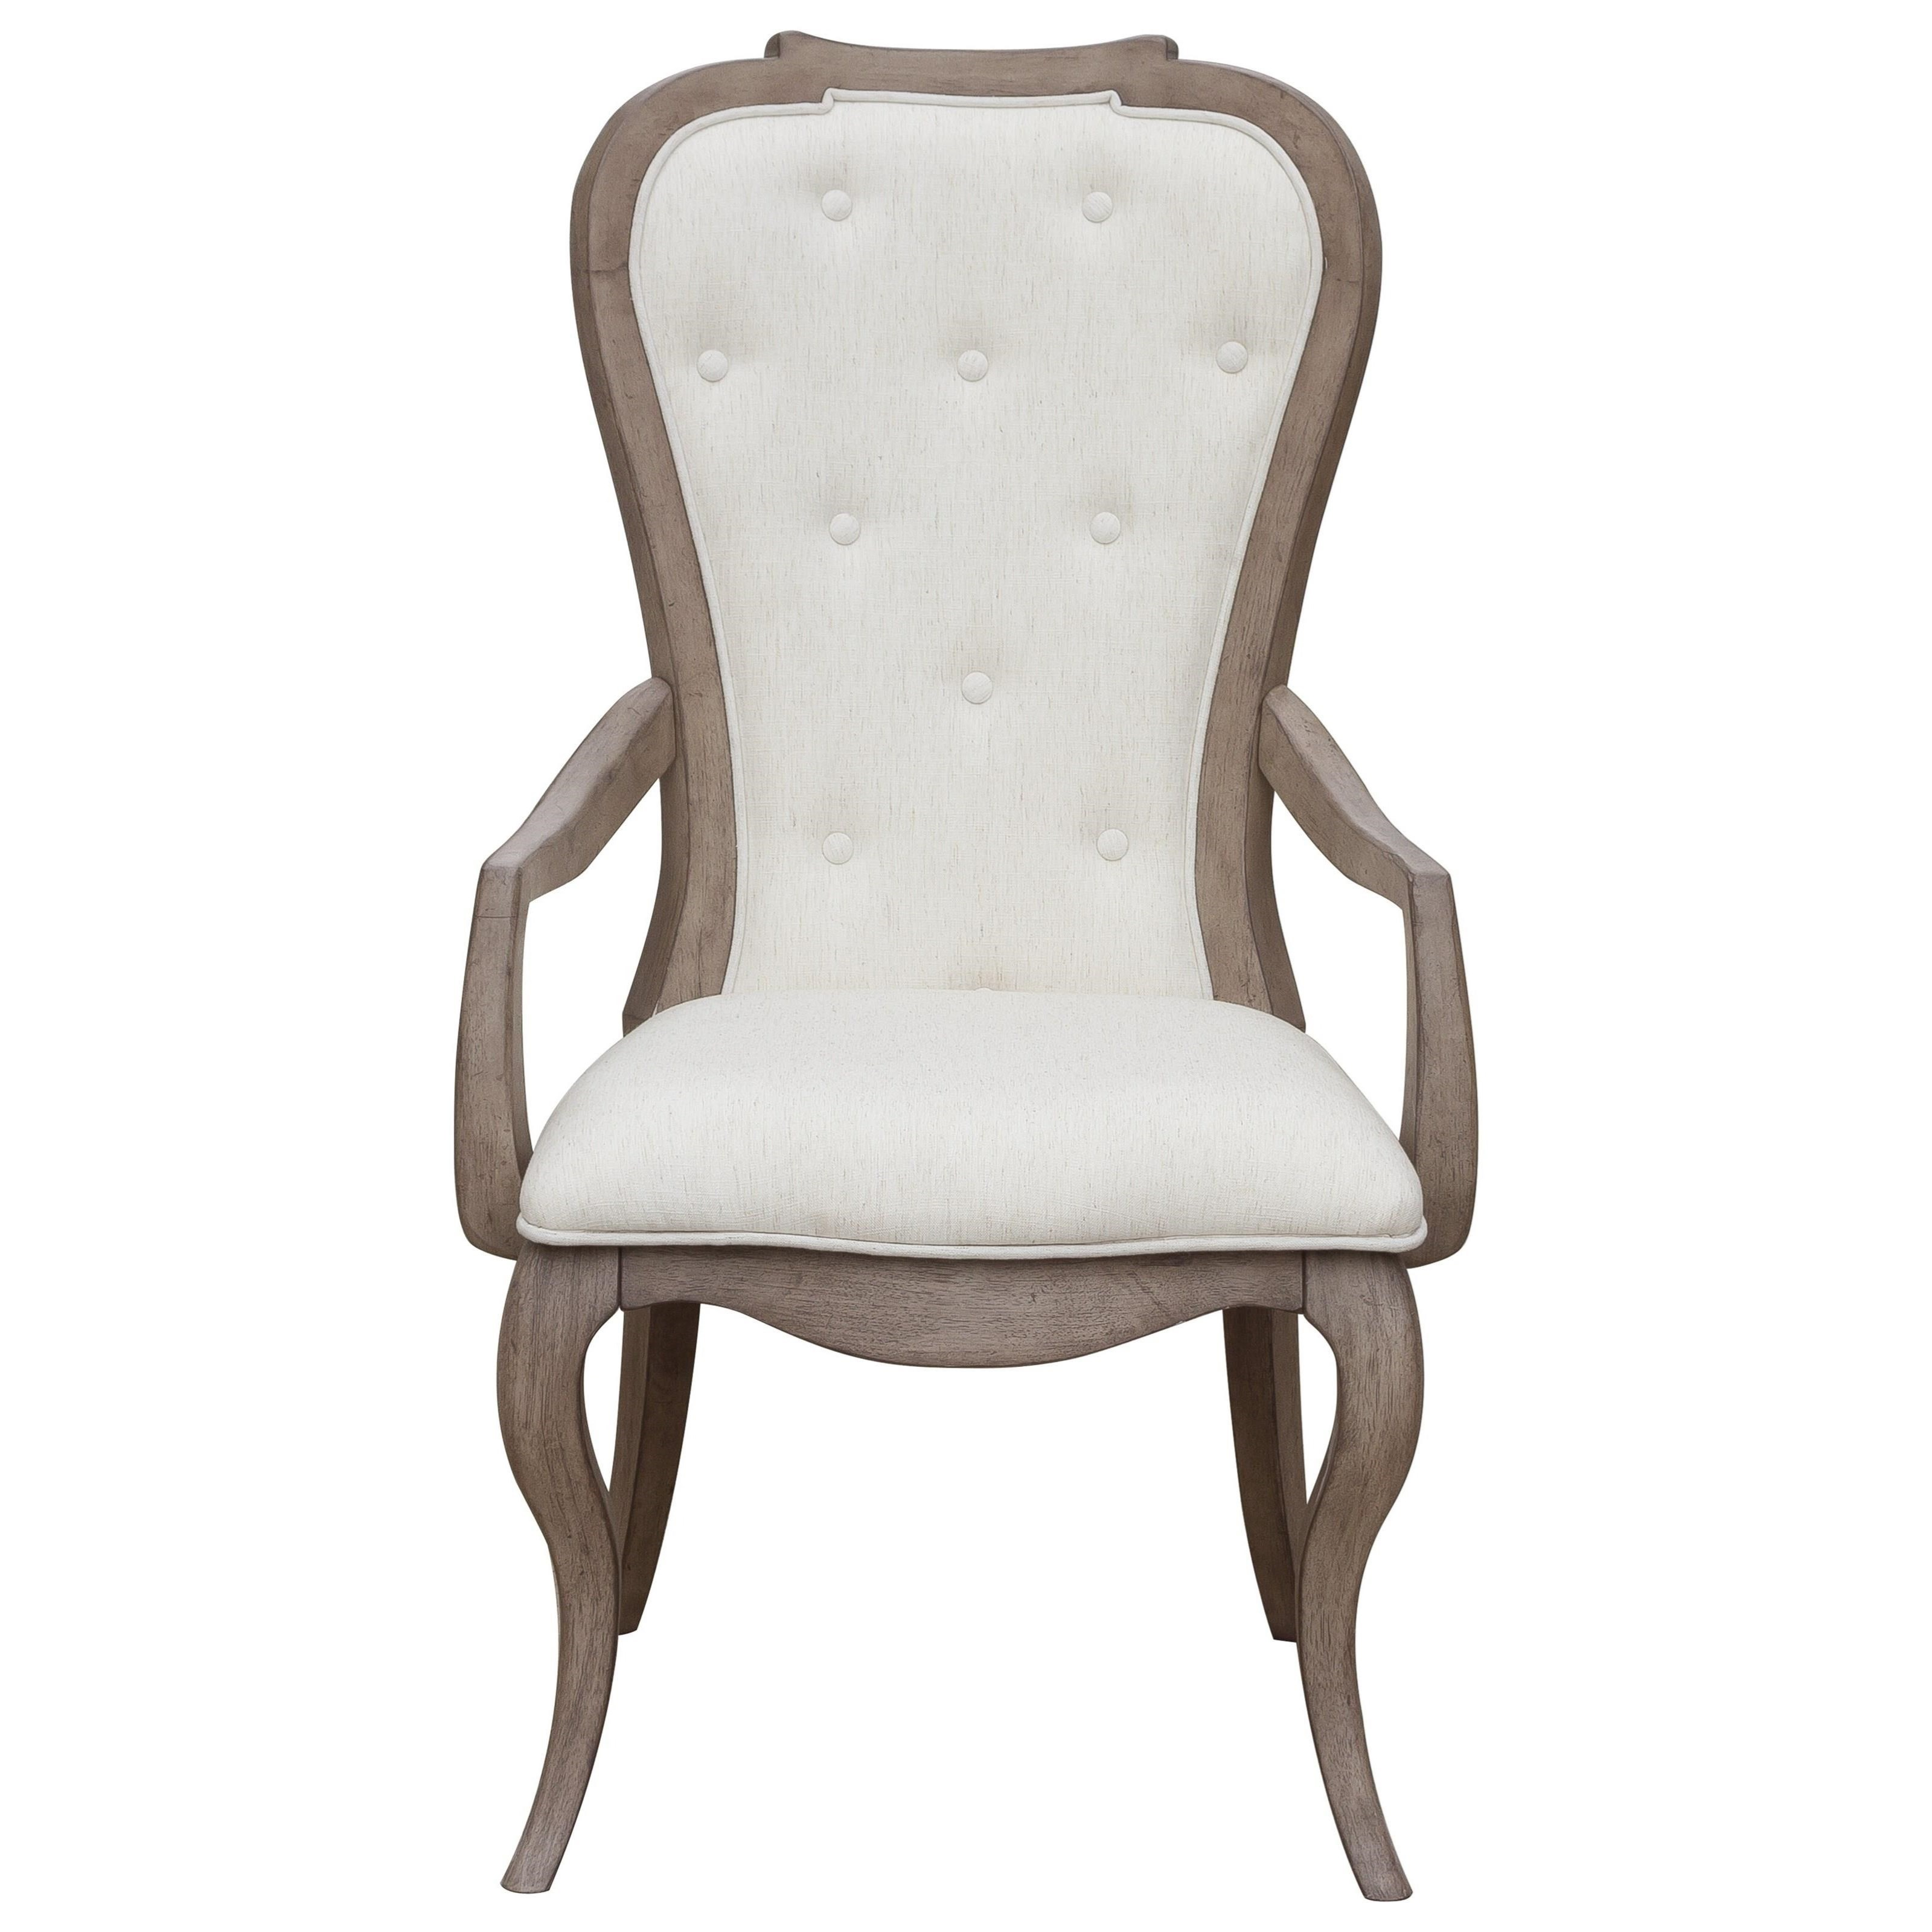 Ella Upholstered Back Arm Chair by Pulaski Furniture at Bullard Furniture